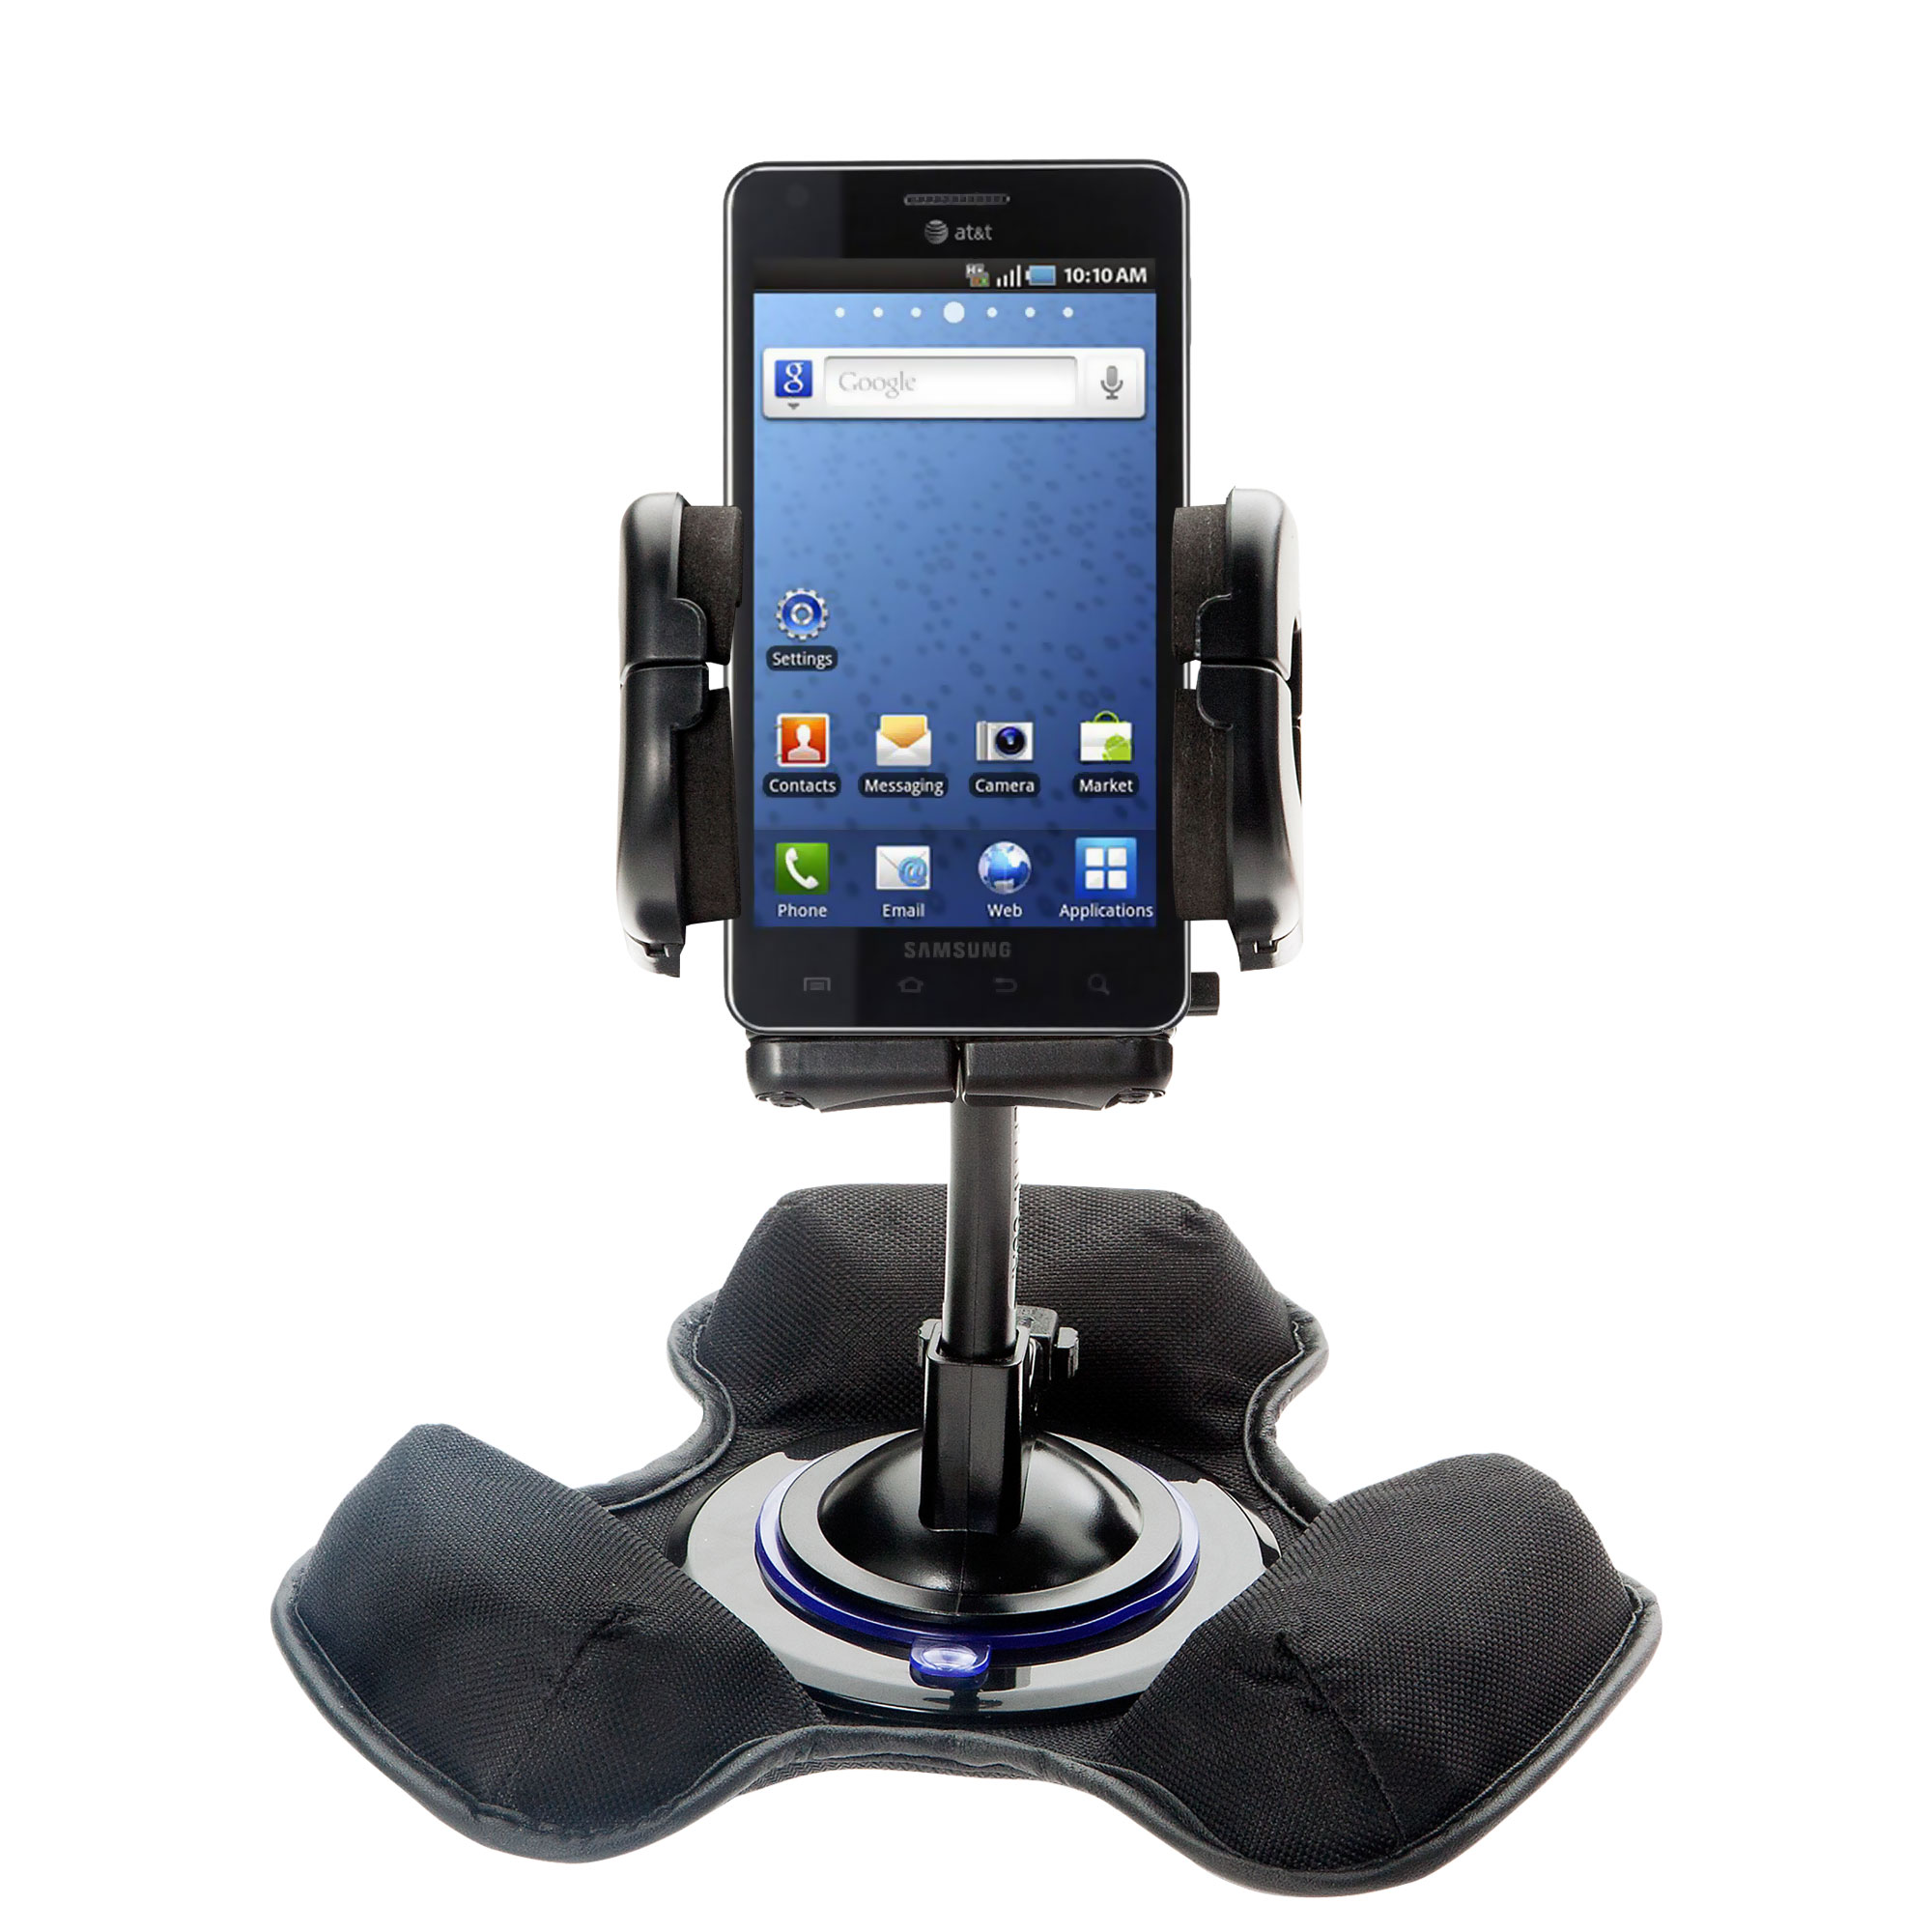 Dash and Windshield Holder compatible with the Samsung Infuse 4G